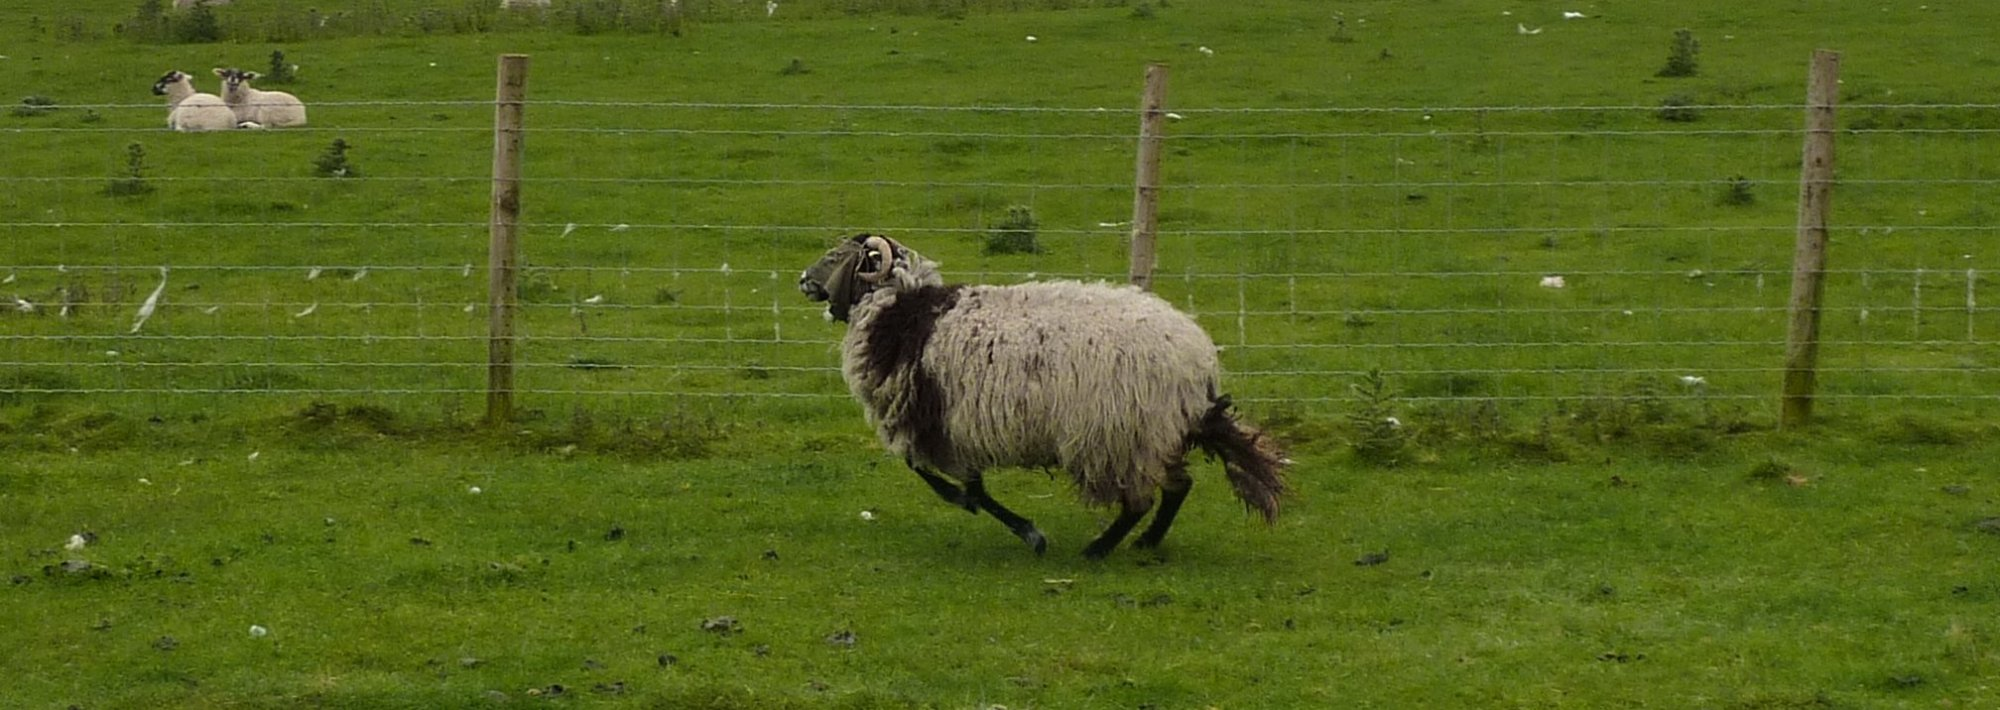 Hoodie sheep dashing away